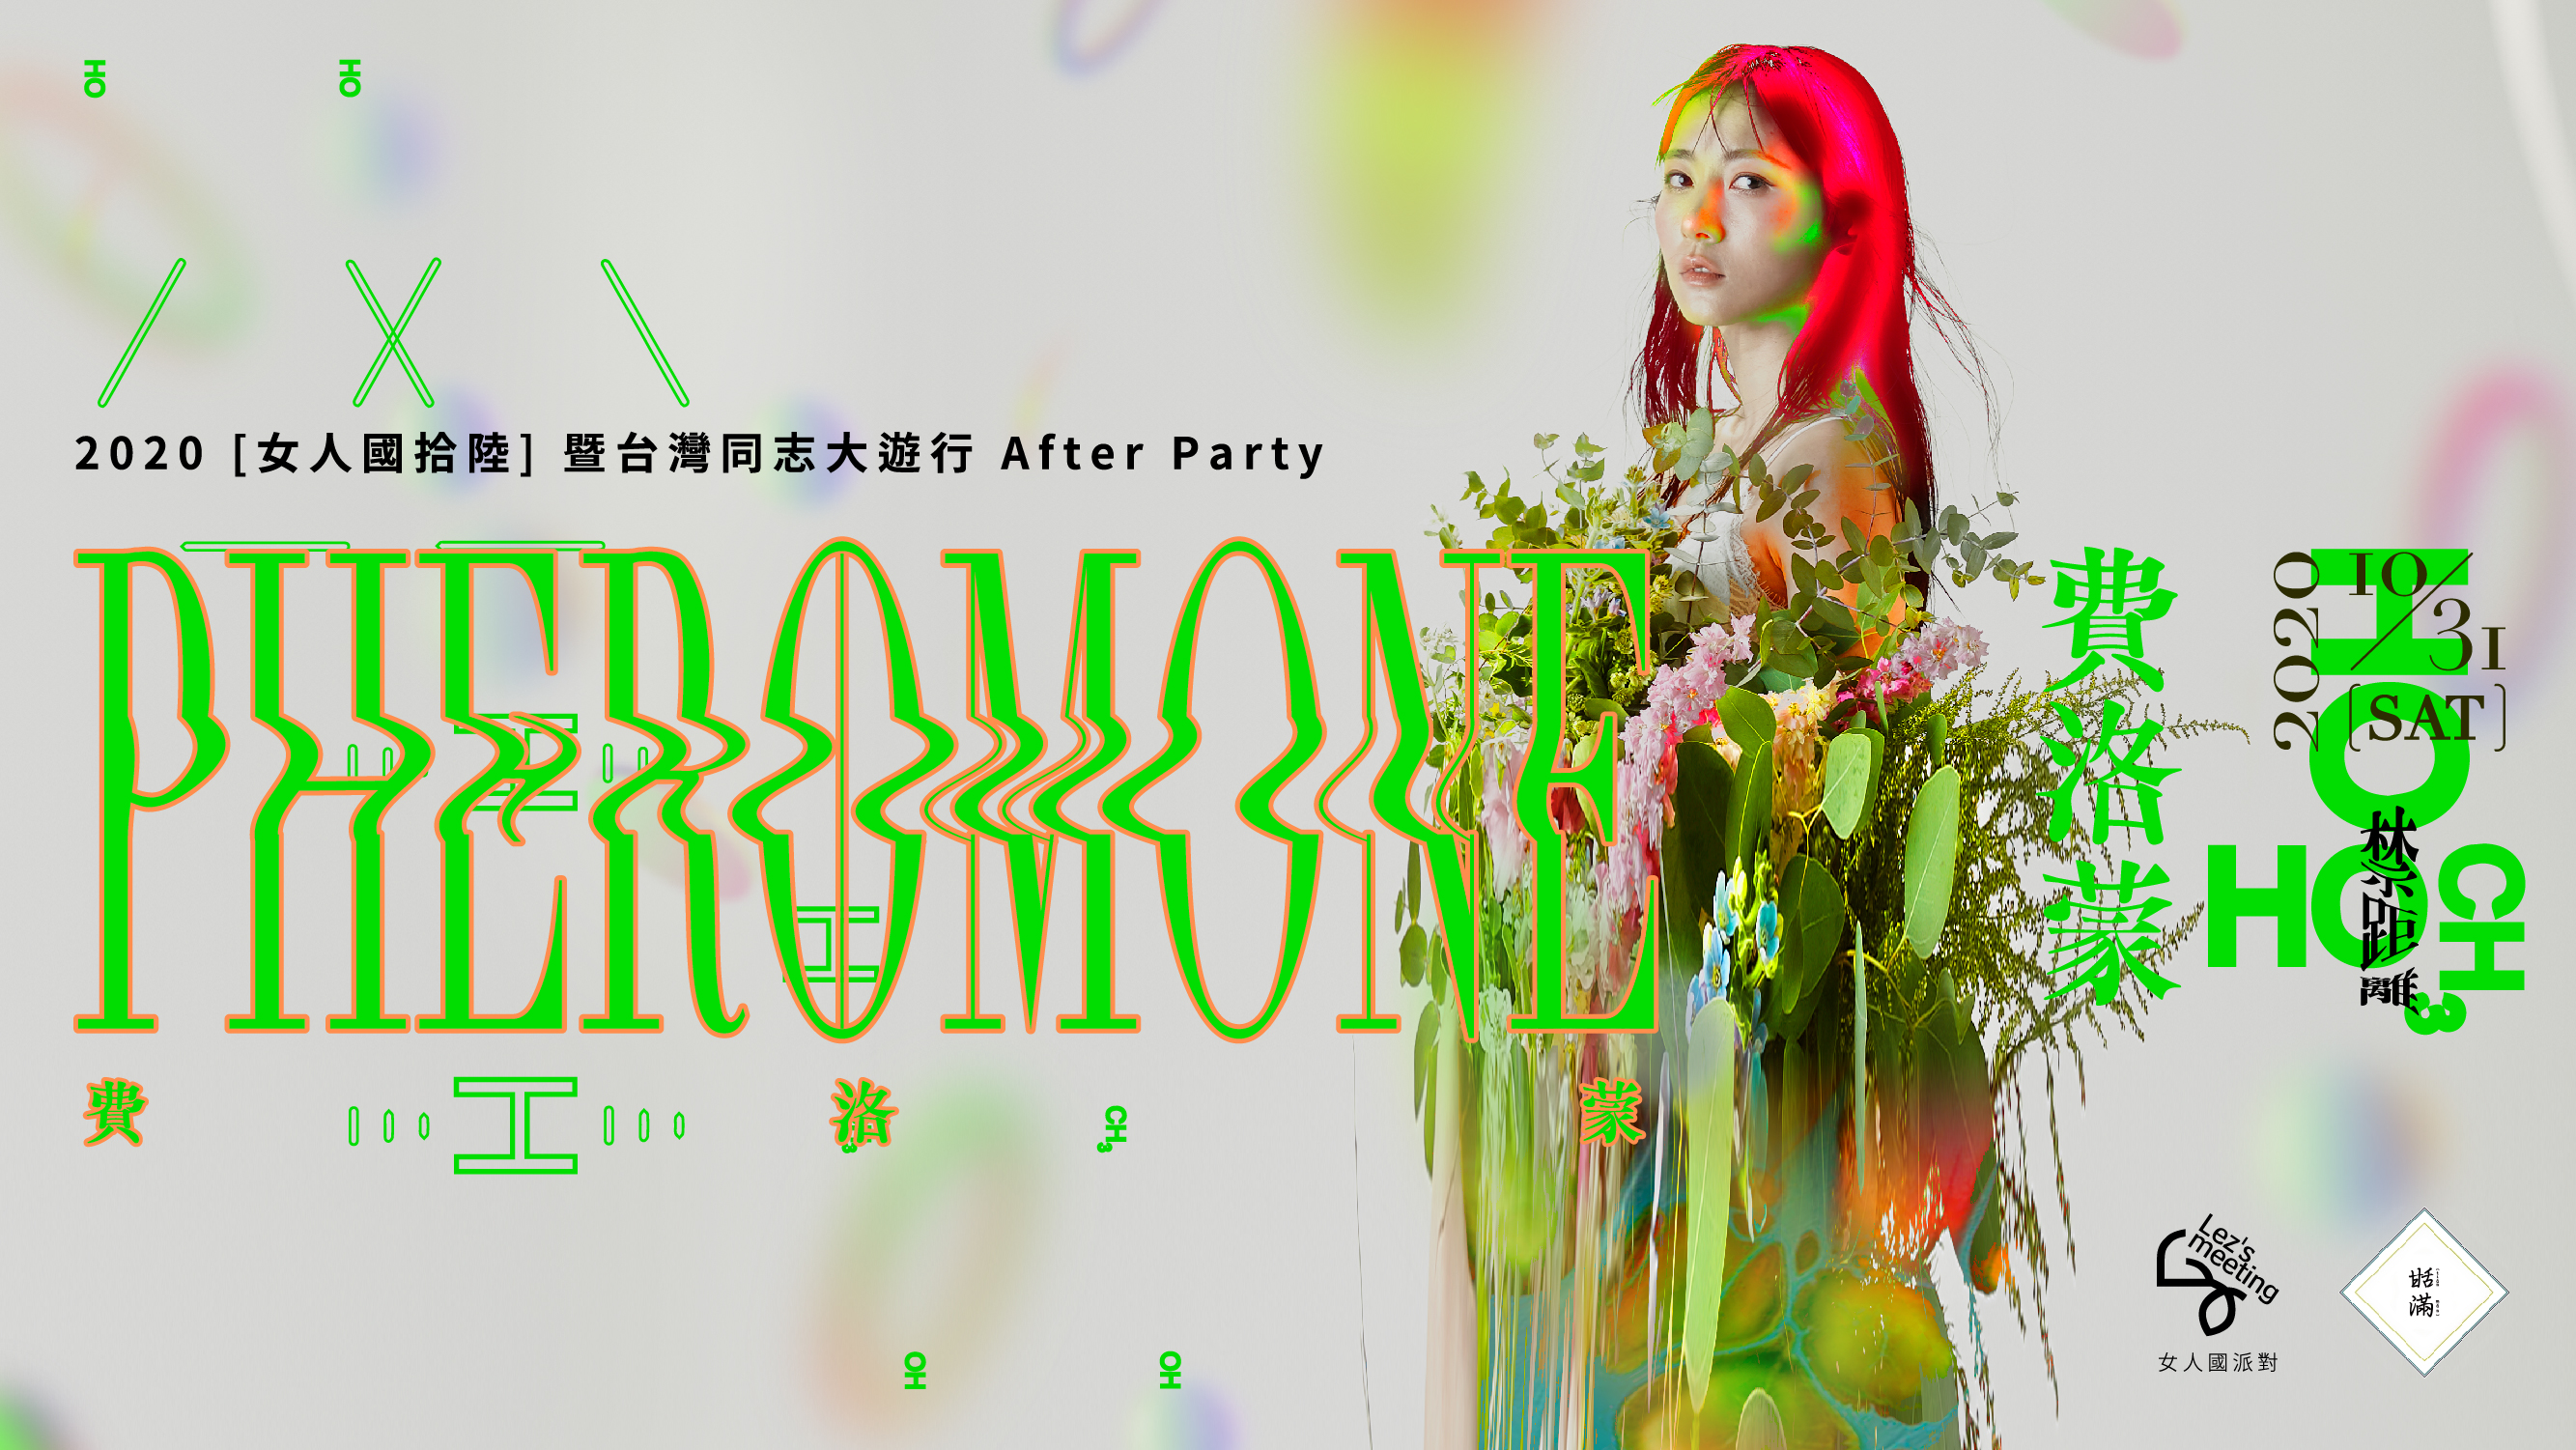 2020 Gay Pride After Party 【Pheromone】  Lez's Meeting女人國 Sisteenth